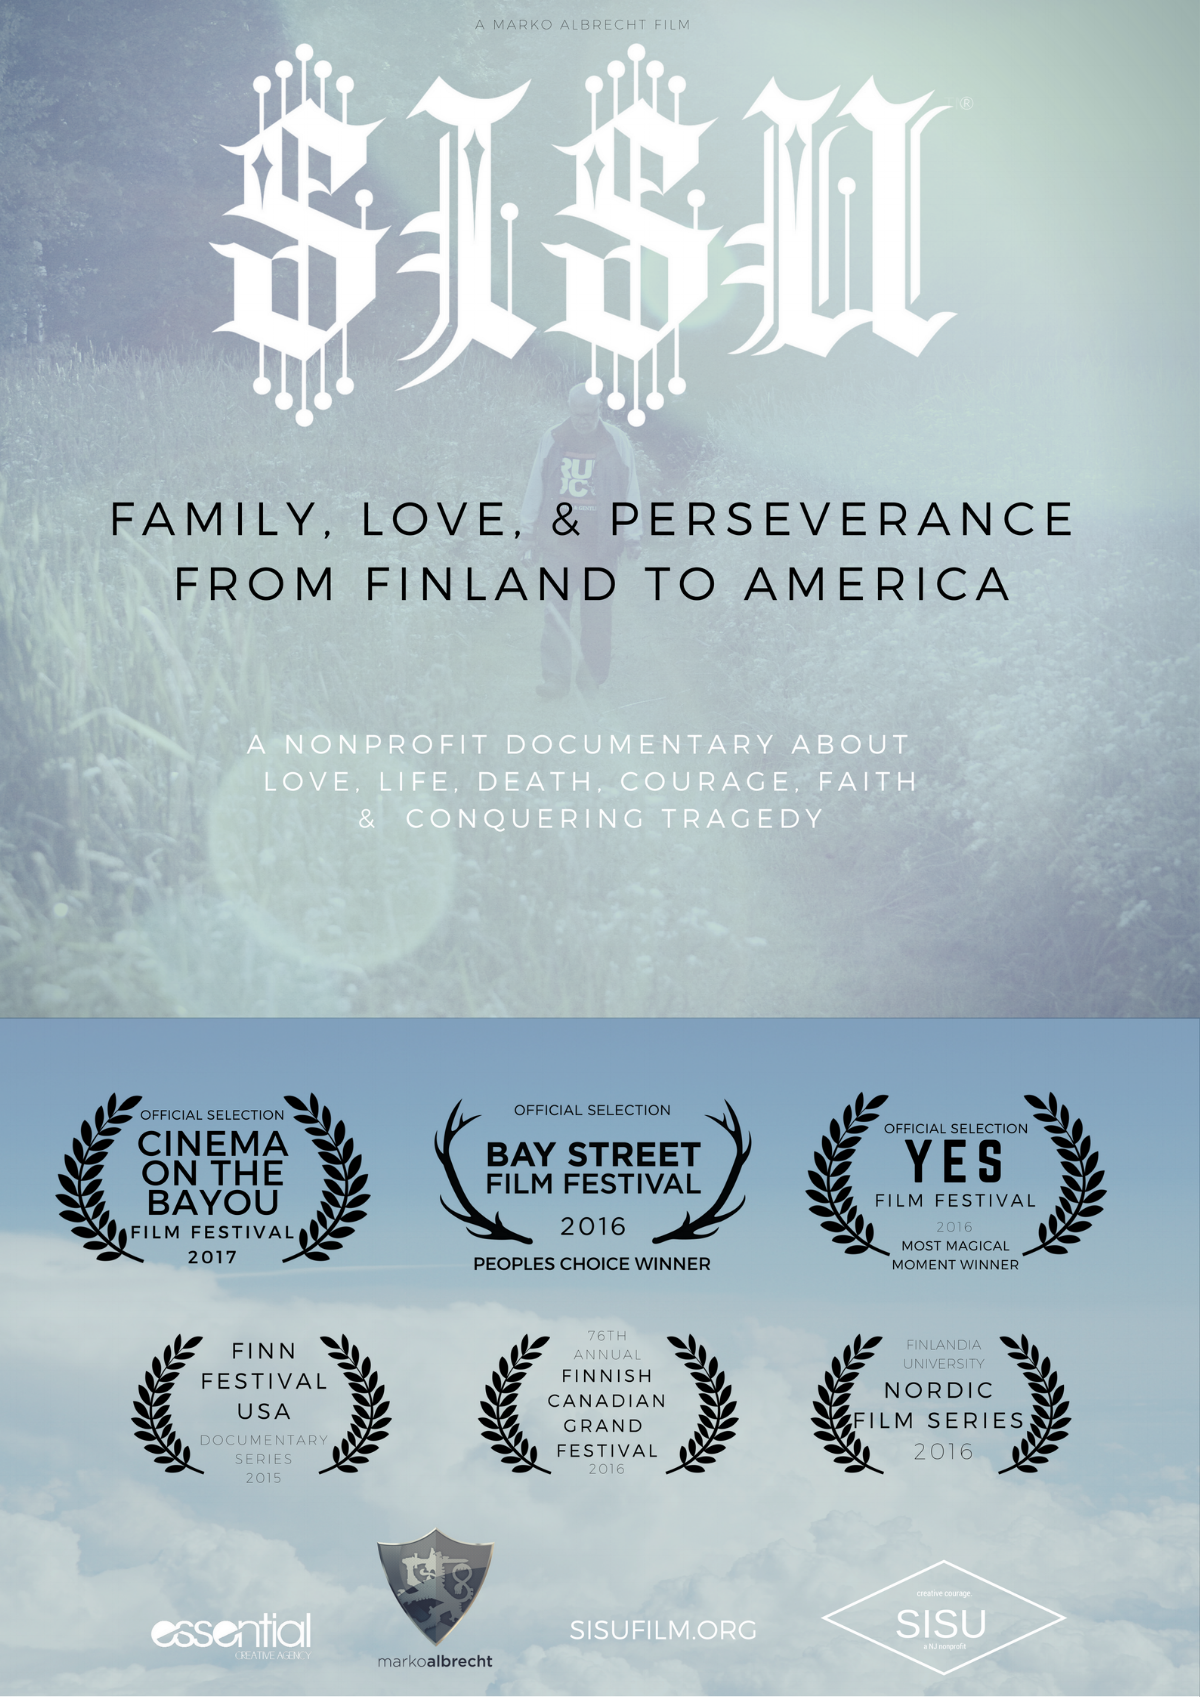 SISU: Family, Love and Perseverance from Finland to America.